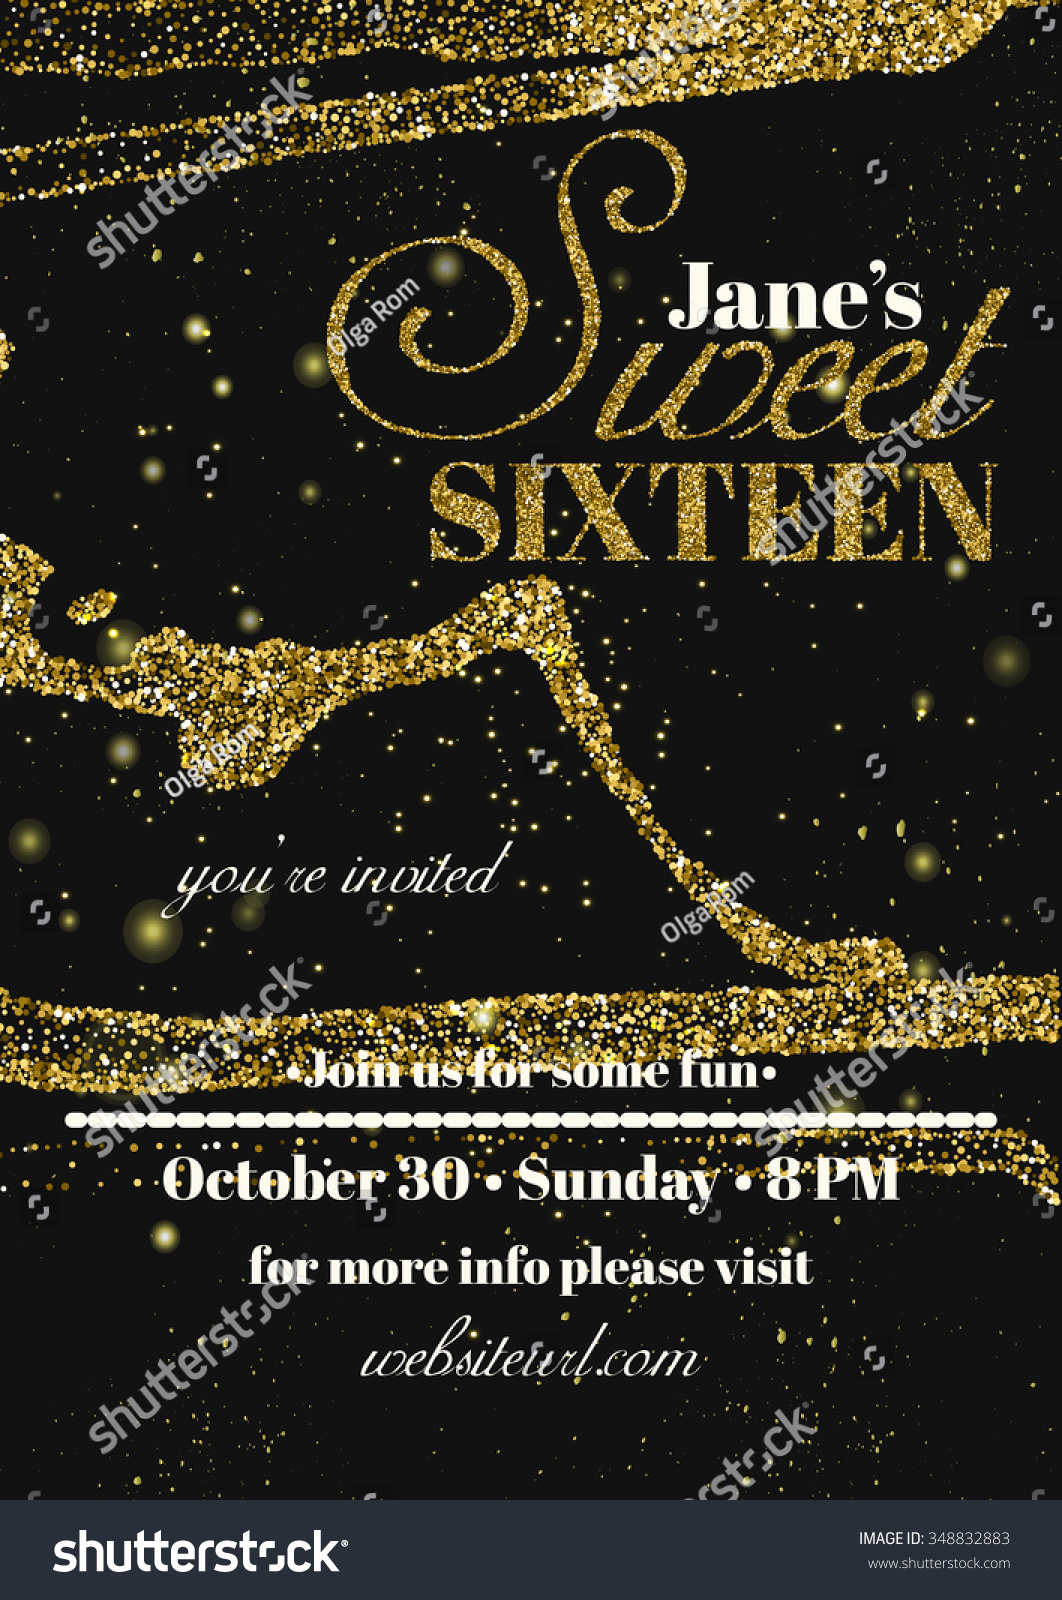 sweet sixteen glitter party invitation flyer stock vector sweet sixteen glitter party invitation flyer template design abstract background for card flyer